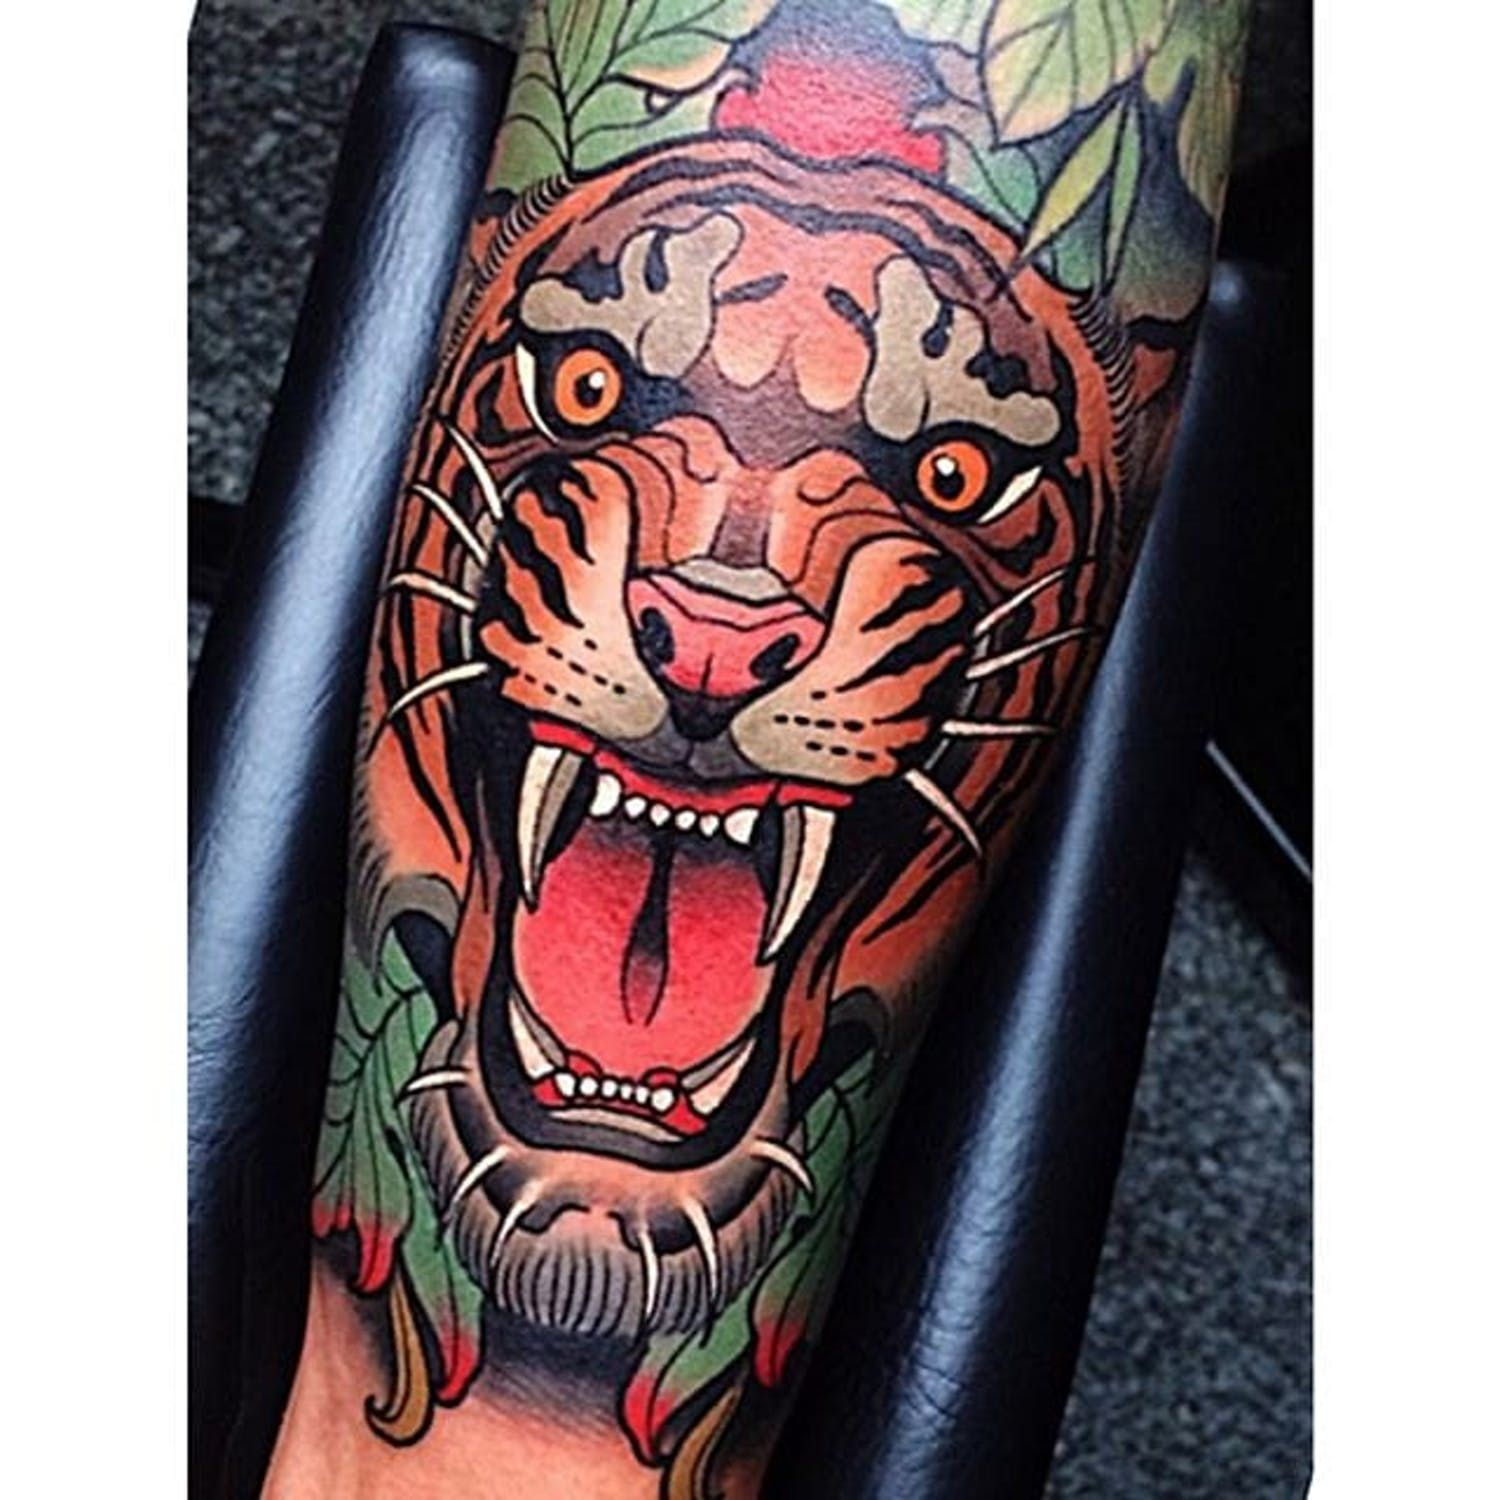 A Growling Tiger Johnnydomus Neotraditional Traditional Tiger Growl Traditional Tattoo Design Traditional Tiger Tattoo Tattoo Designs Men